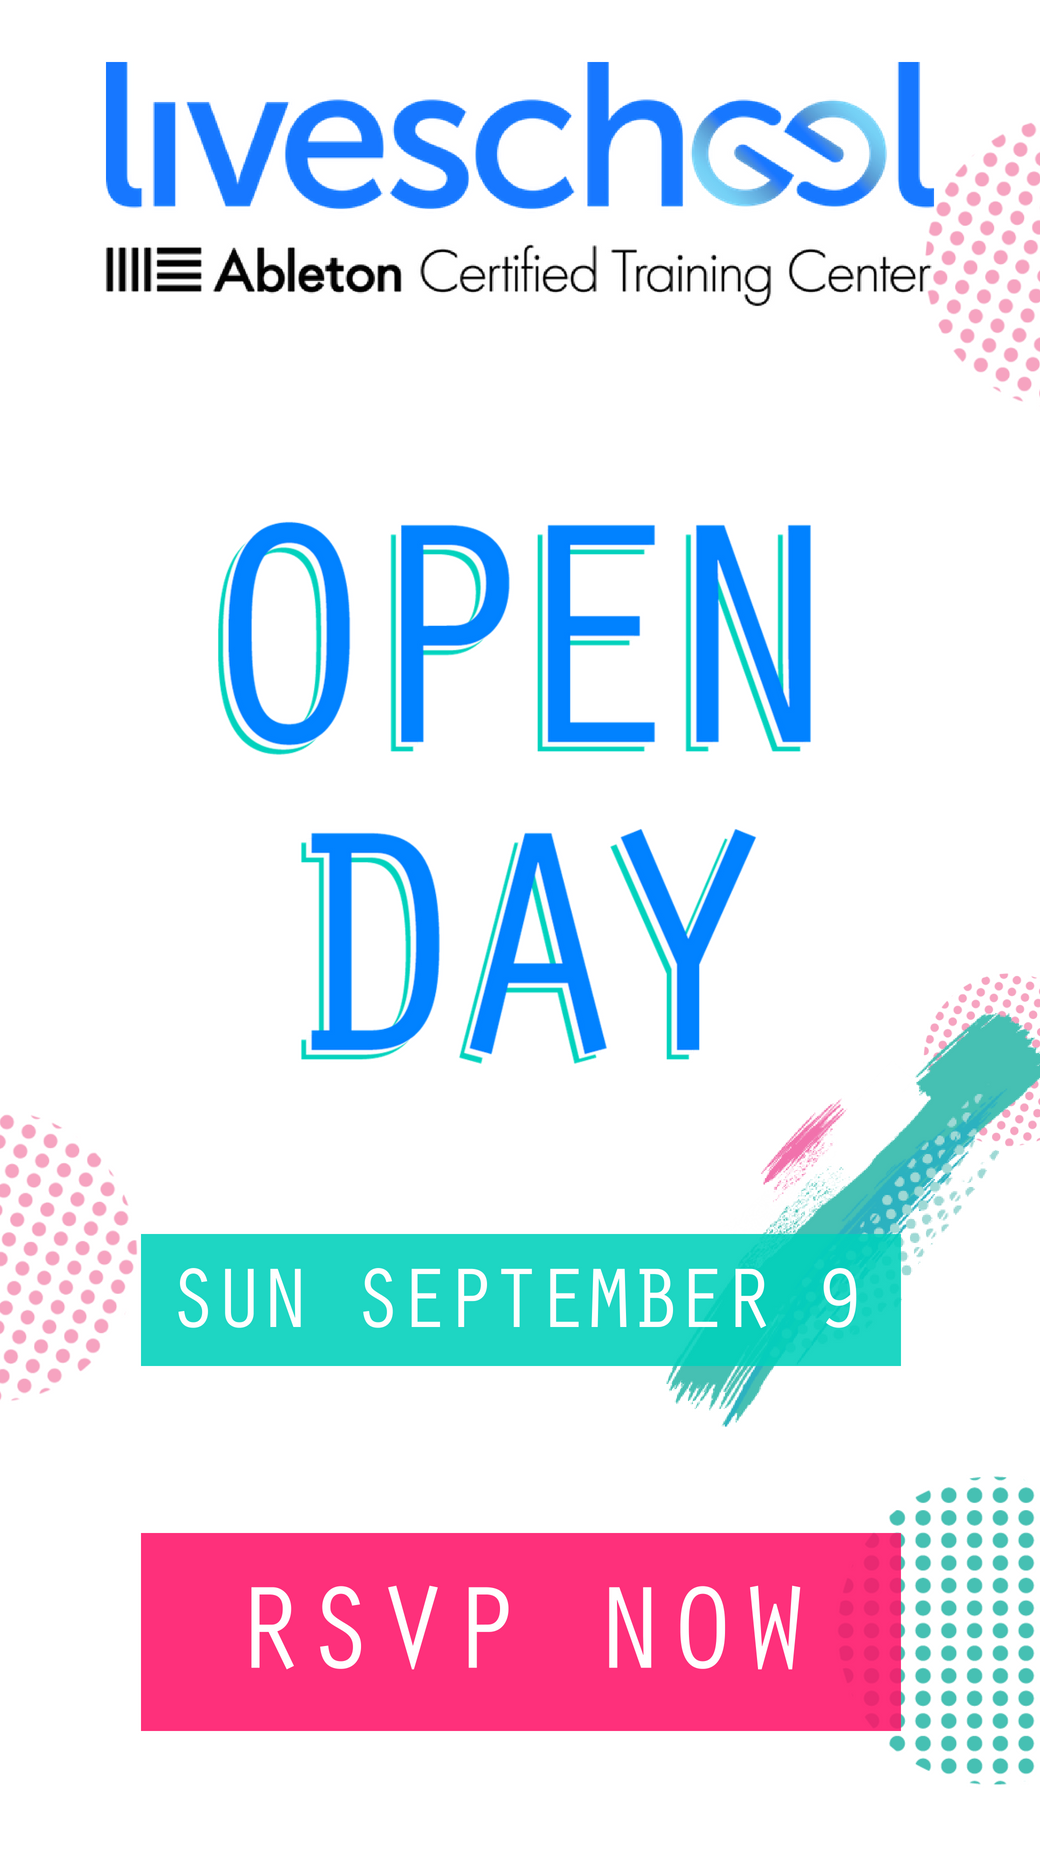 RSVP for Open Day Sept 9